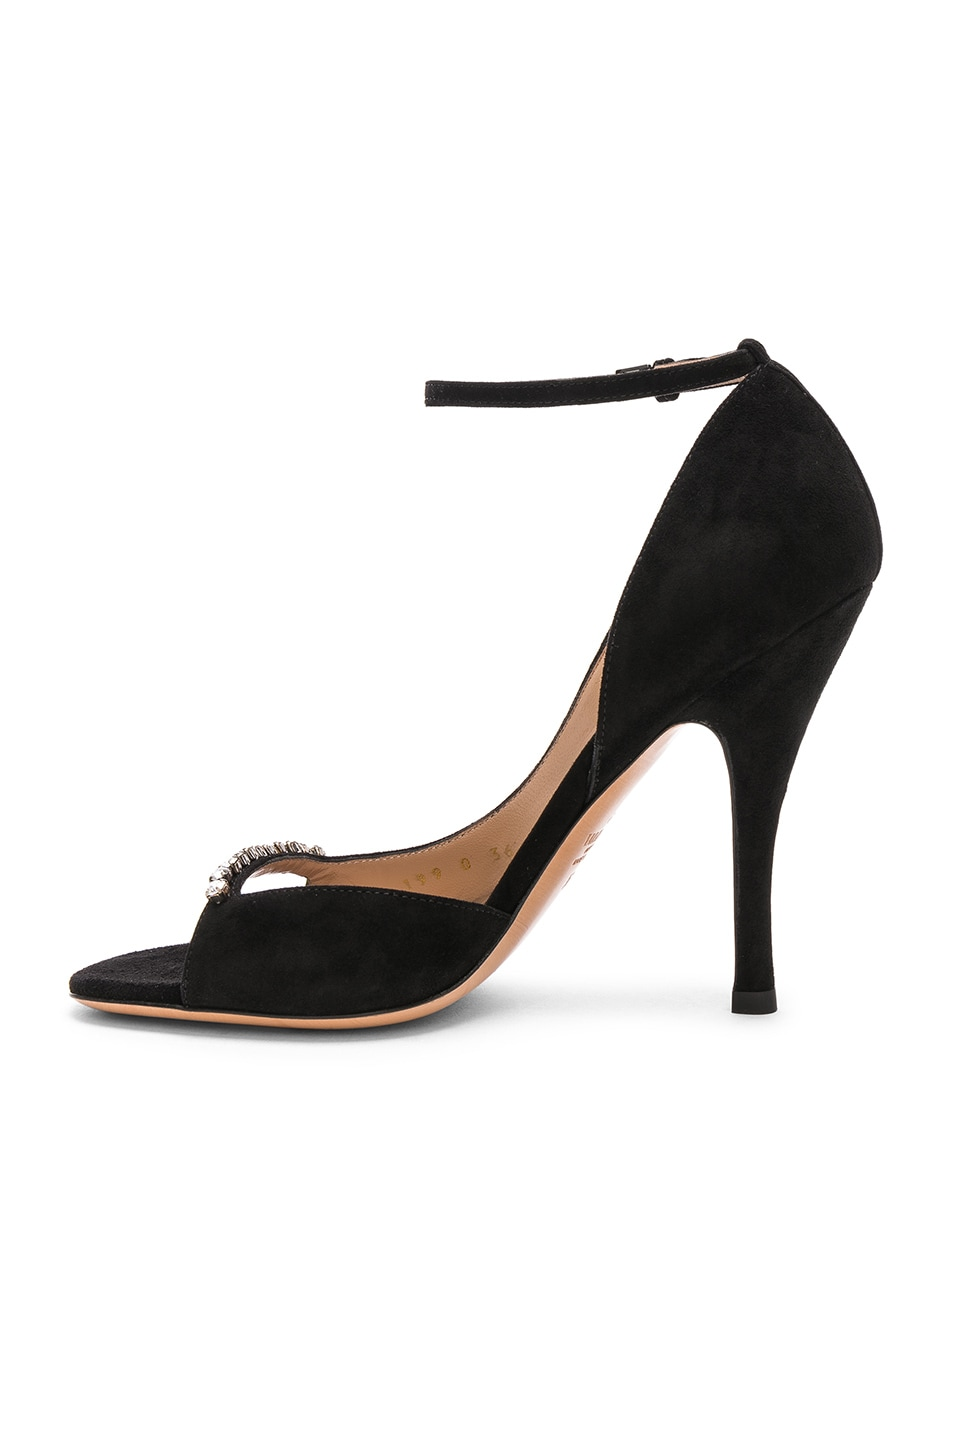 Image 5 of Valentino Suede Ringtoes Pumps in Black